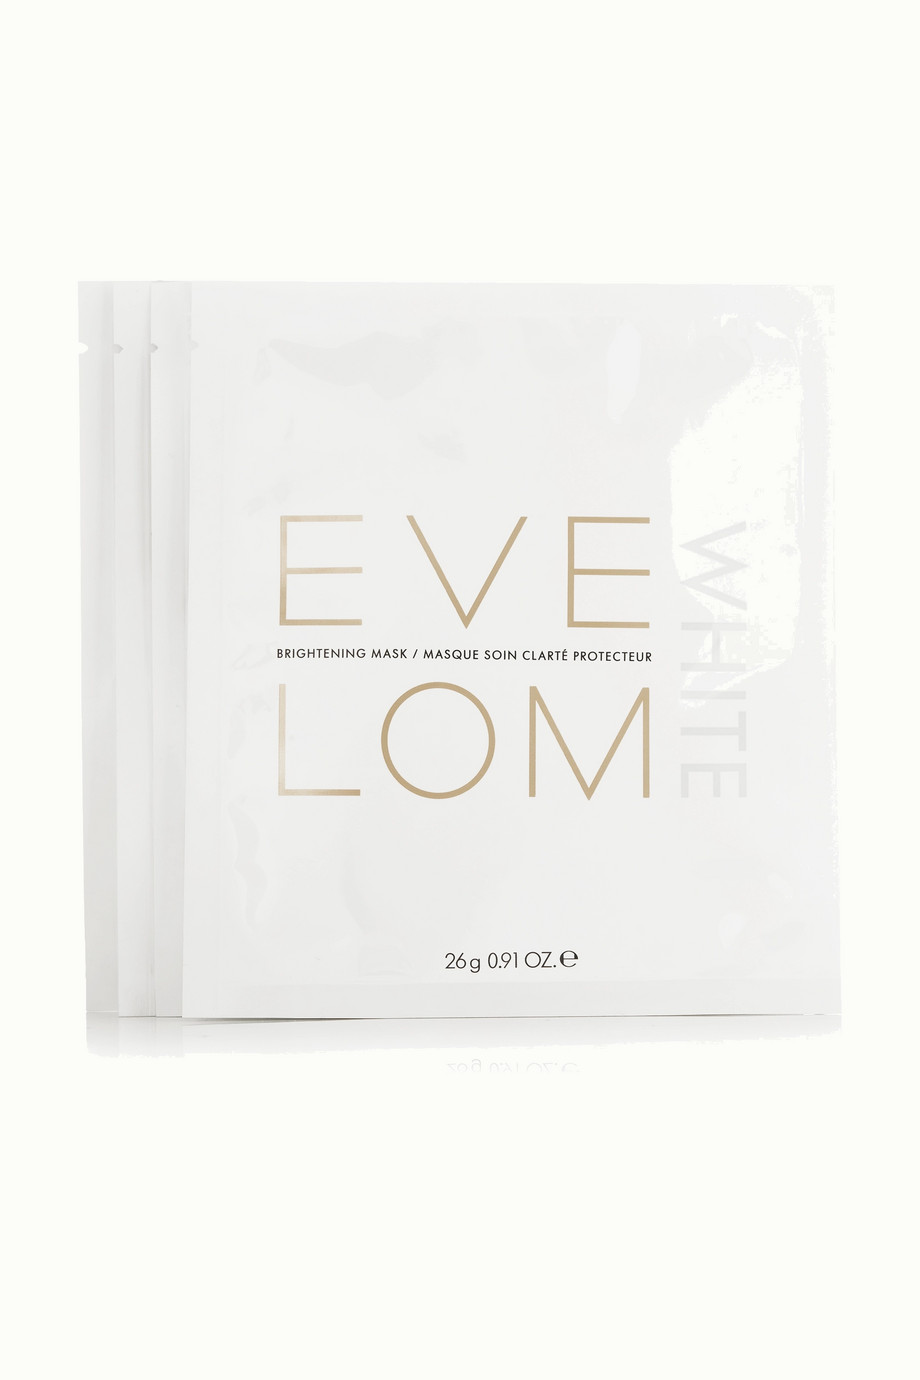 Eve Lom Brightening Mask, 4 x 26g